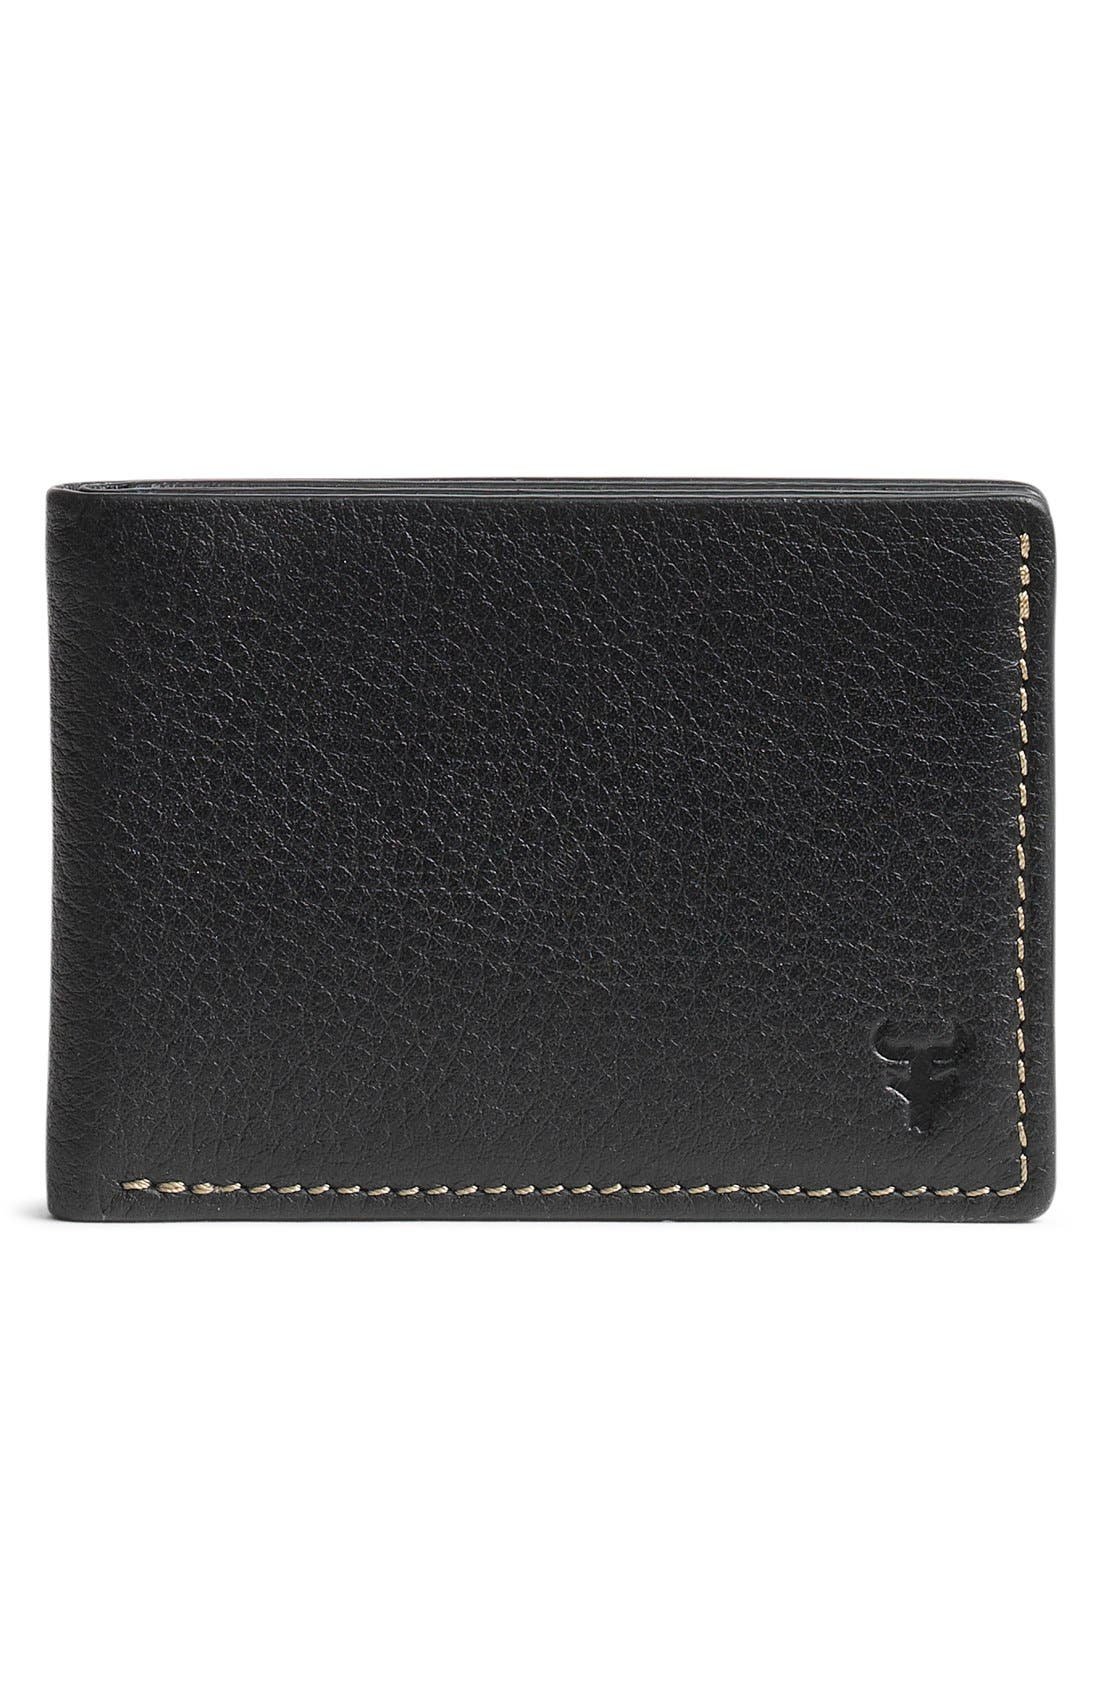 Trask 'Jackson' Super Slim Leather Wallet